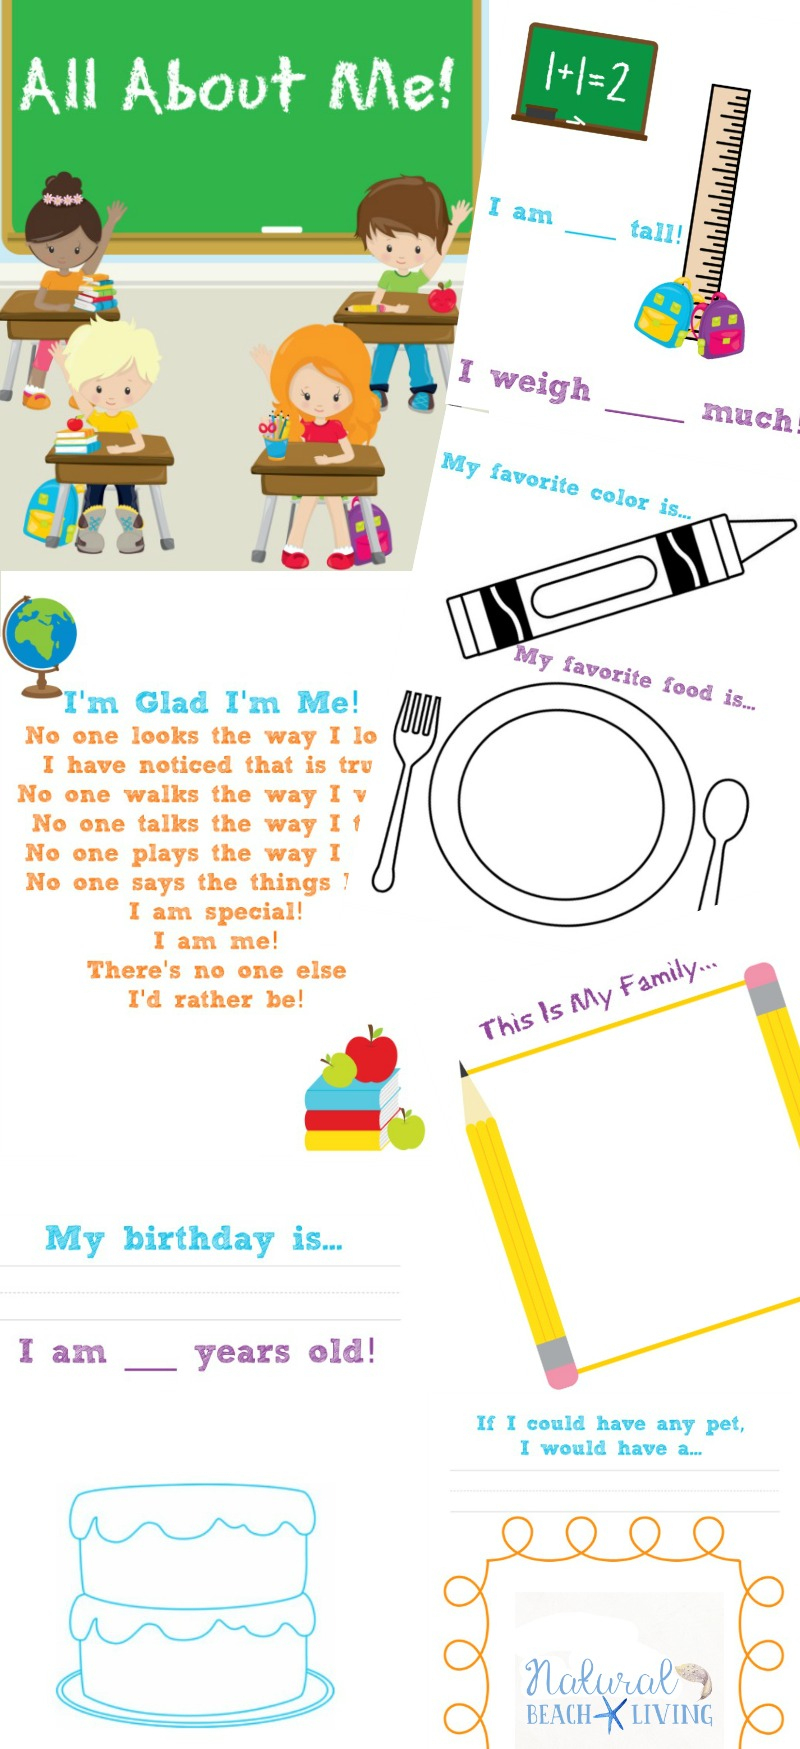 The Best All About Me Preschool Theme Printables - Natural Beach Living | All About Me Worksheet Preschool Printable